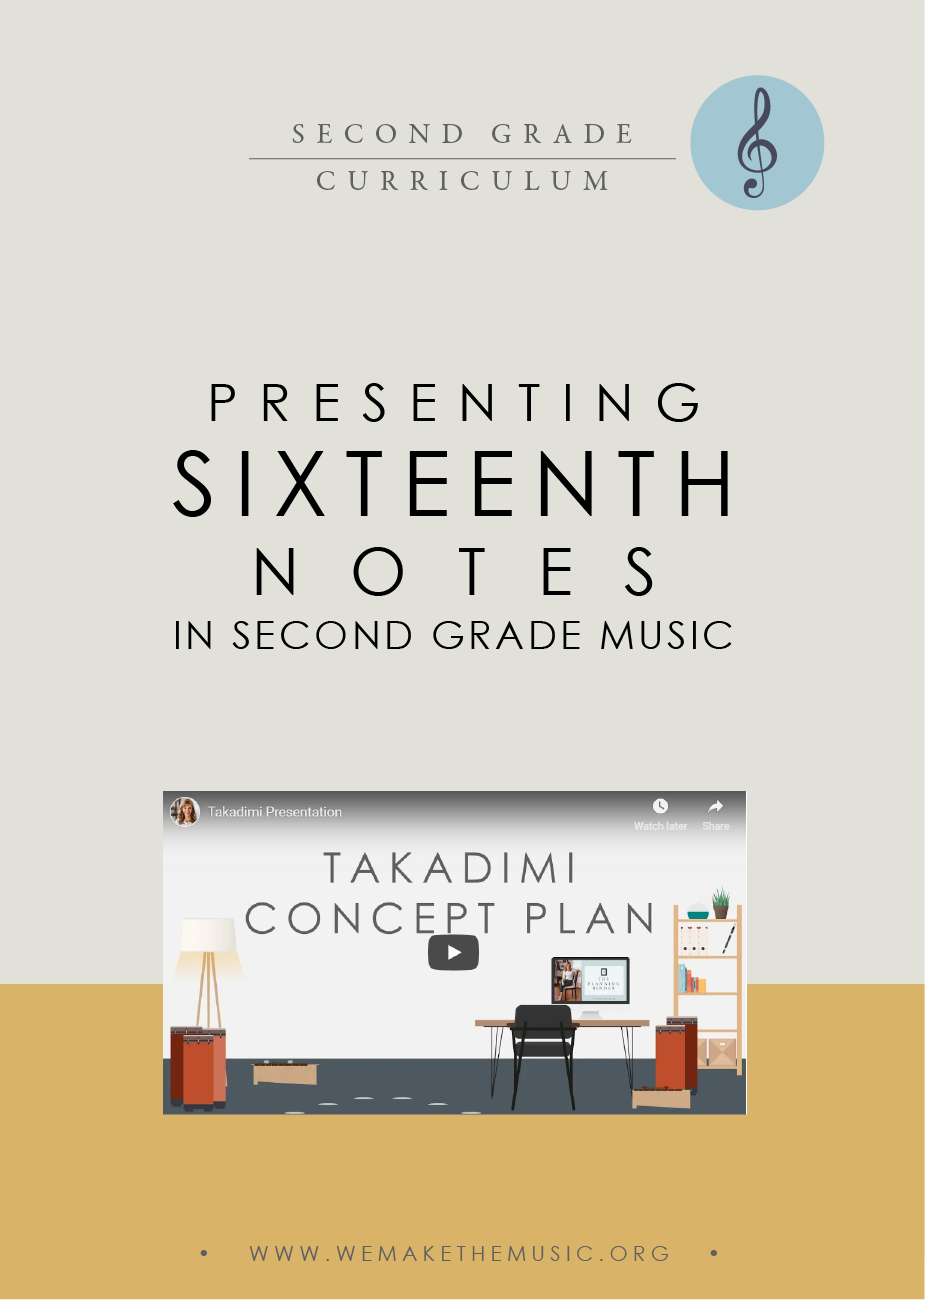 Presentation Plan for 16th Notes in 2nd Grade Music